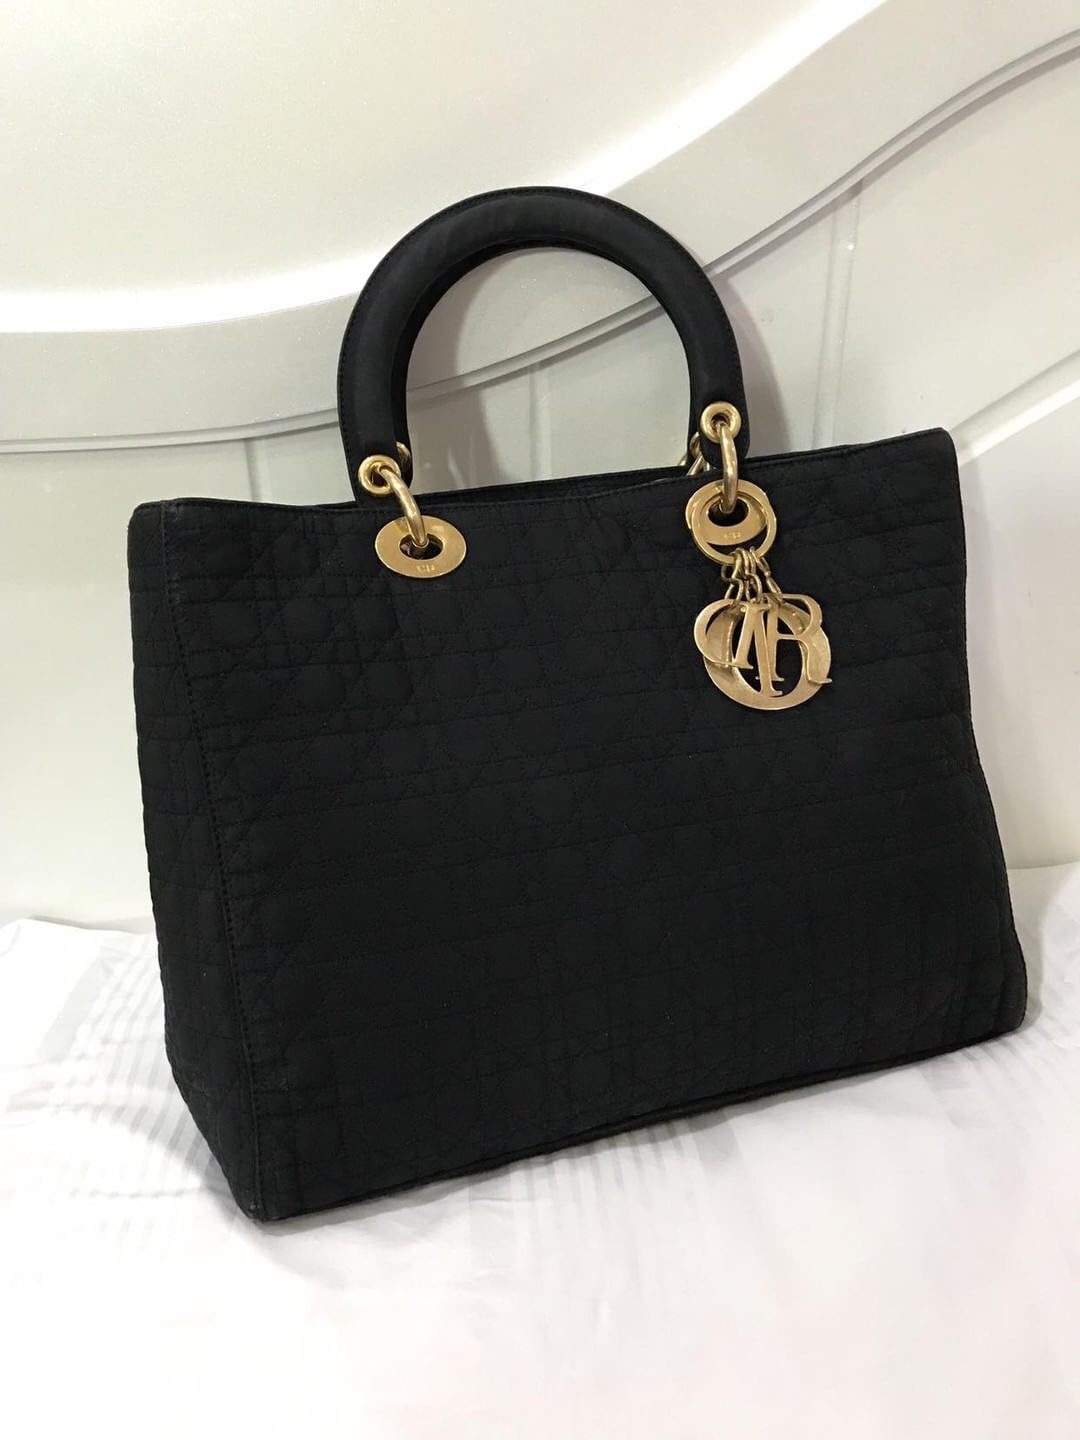 25d9324524f7 Lady Dior Large Microfibre Bag in black with GHW Measurements   32L x 24H x  11W cm Condition   7 10 Color Material   Microfibre fabric in black  Timeless ...